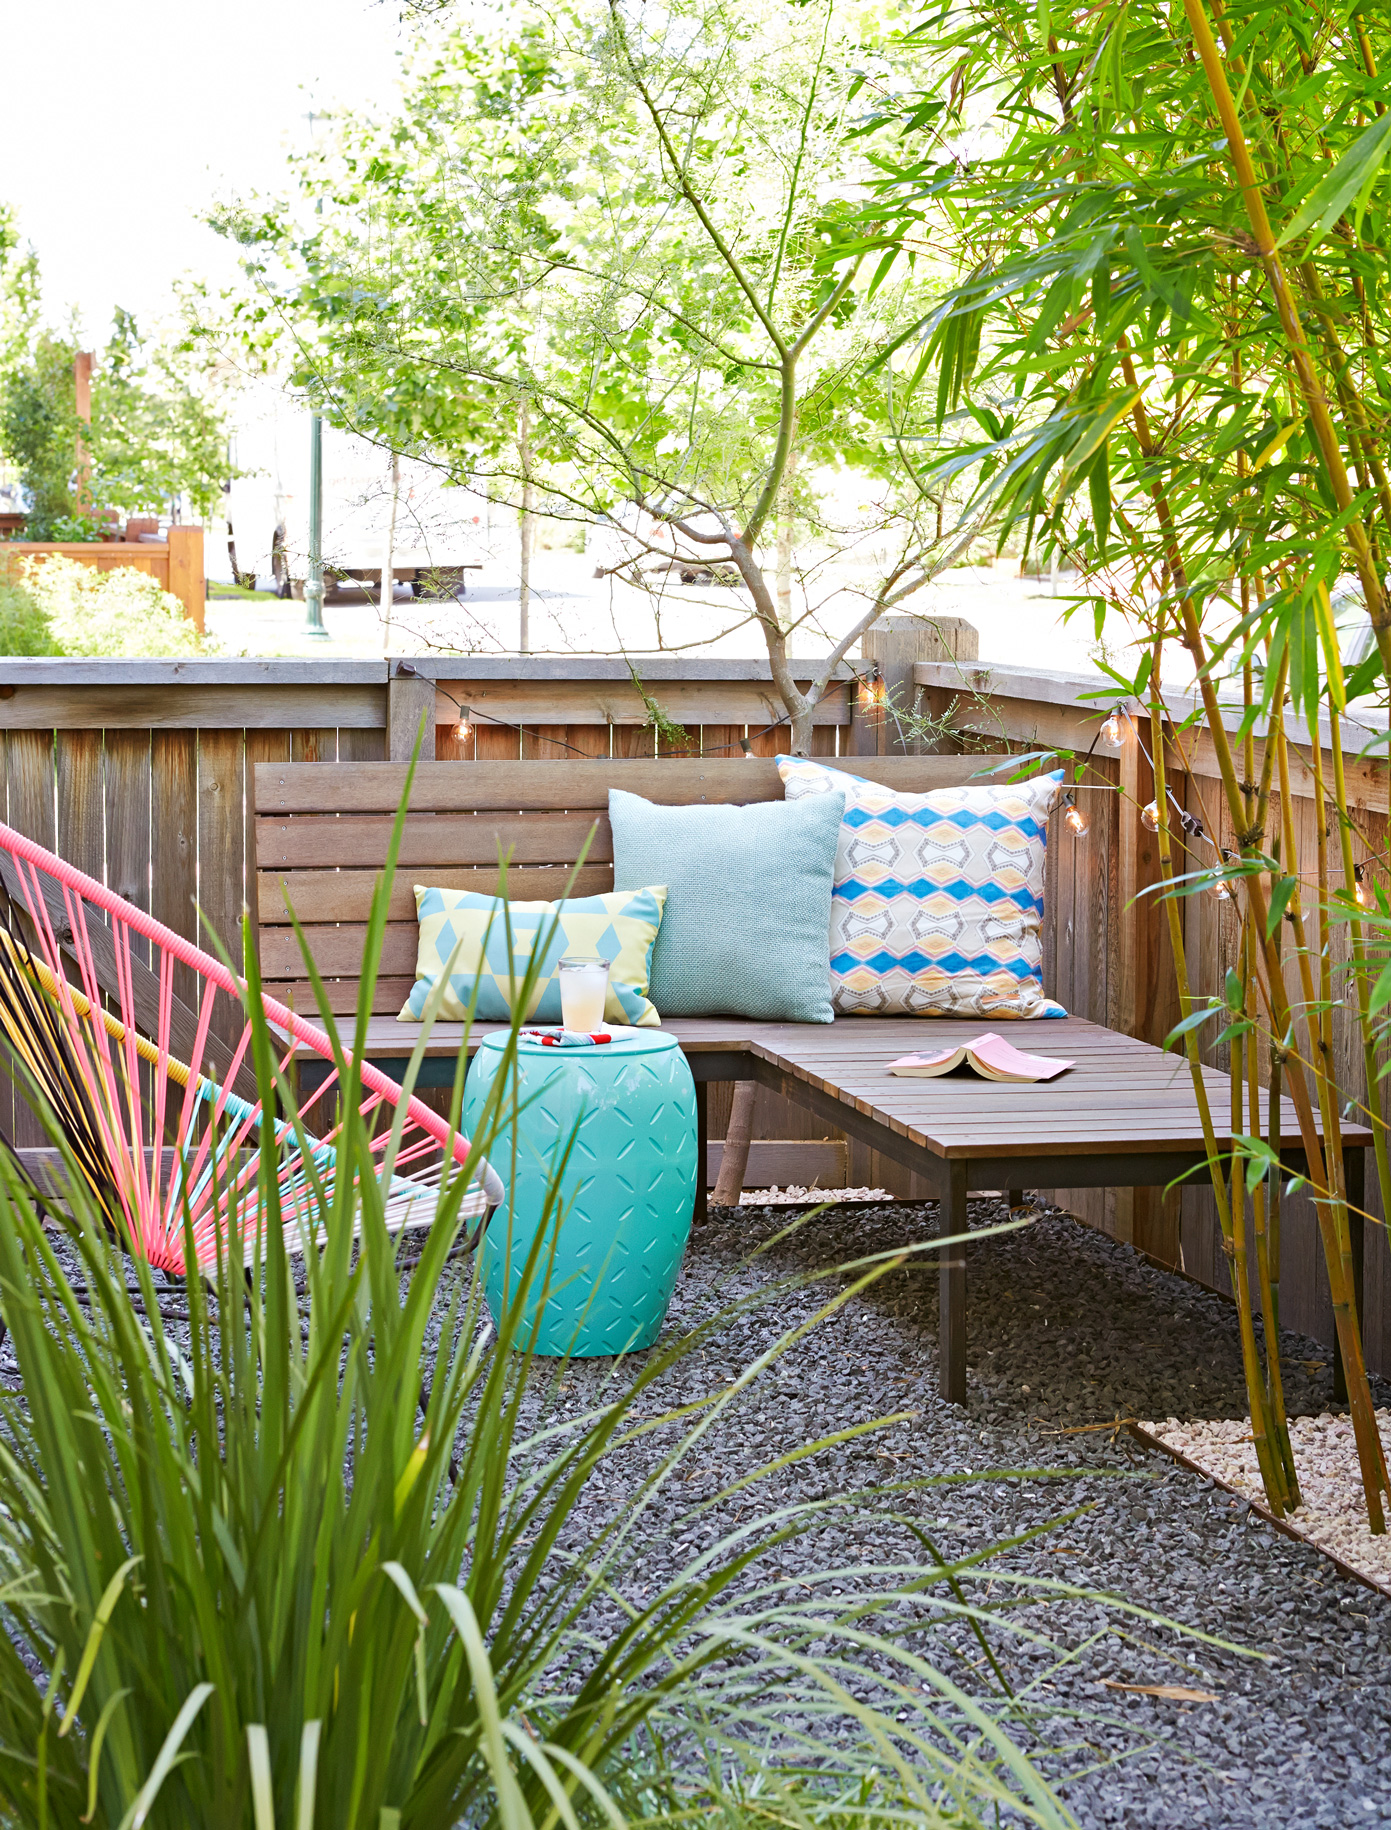 Cheap Backyard Ideas | Better Homes & Gardens on Small Backyard Patio Ideas On A Budget id=37257